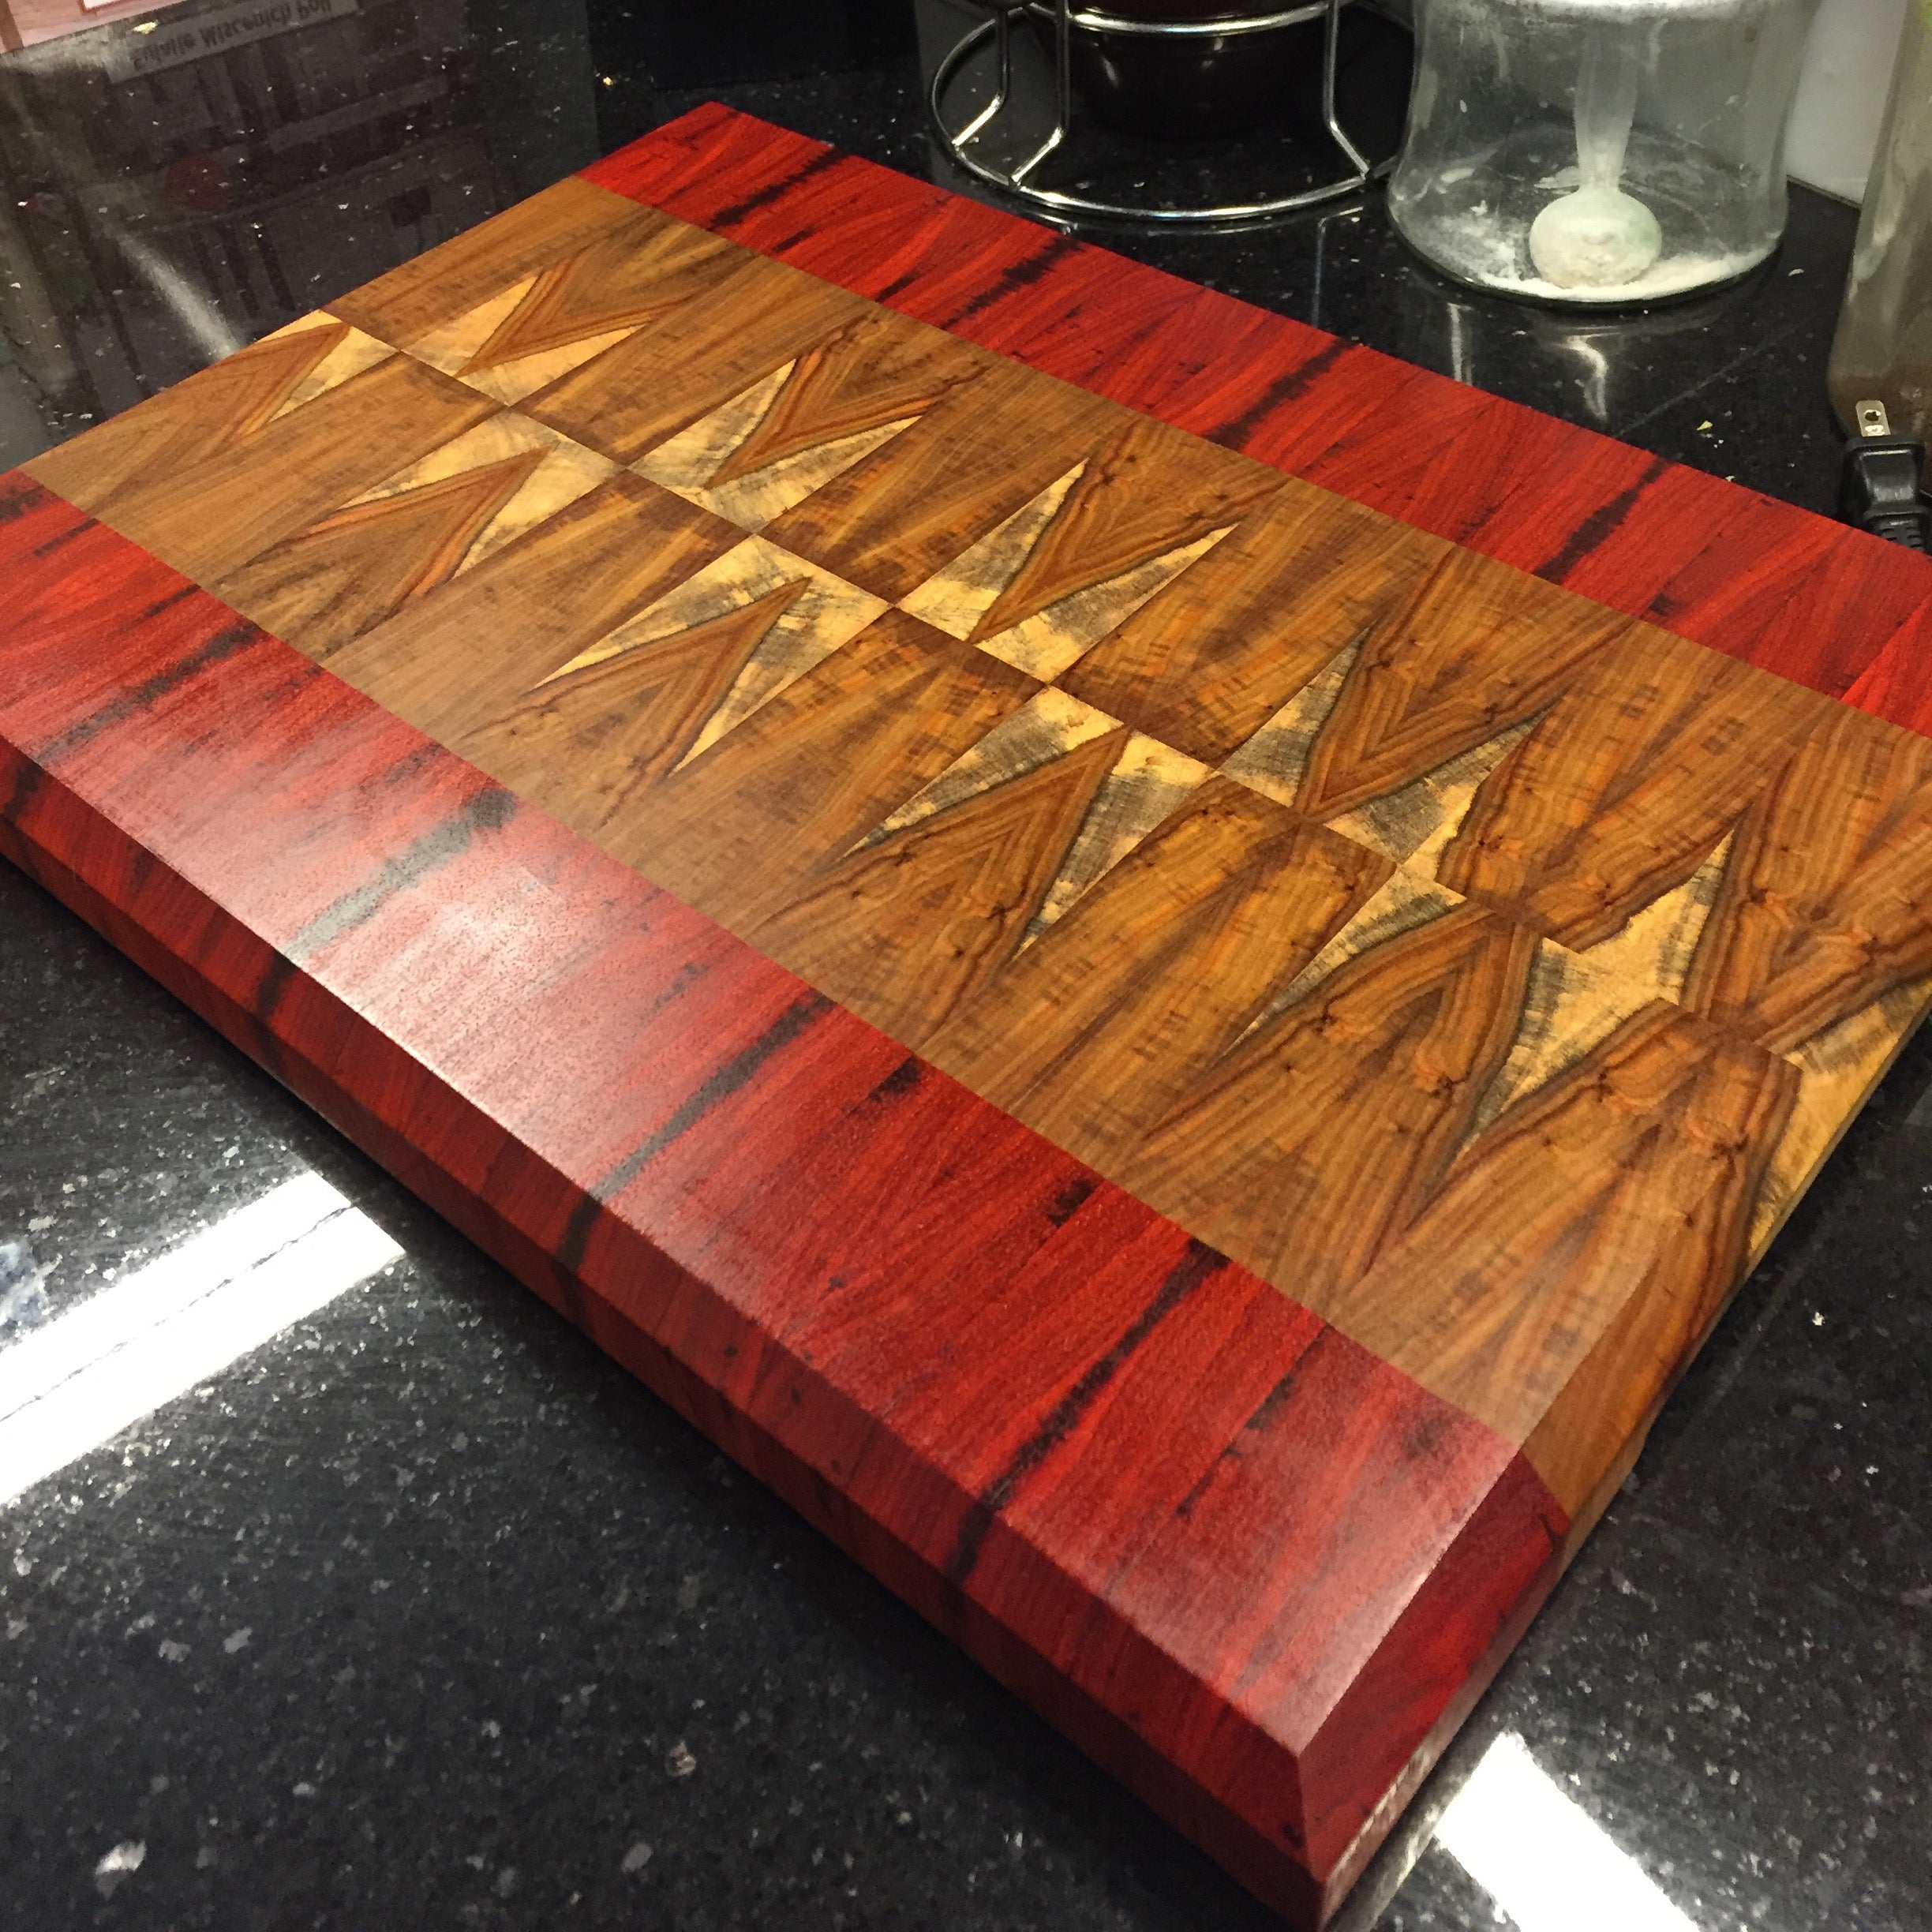 Canary and Padauk Cutting Board | Royal Wood Works